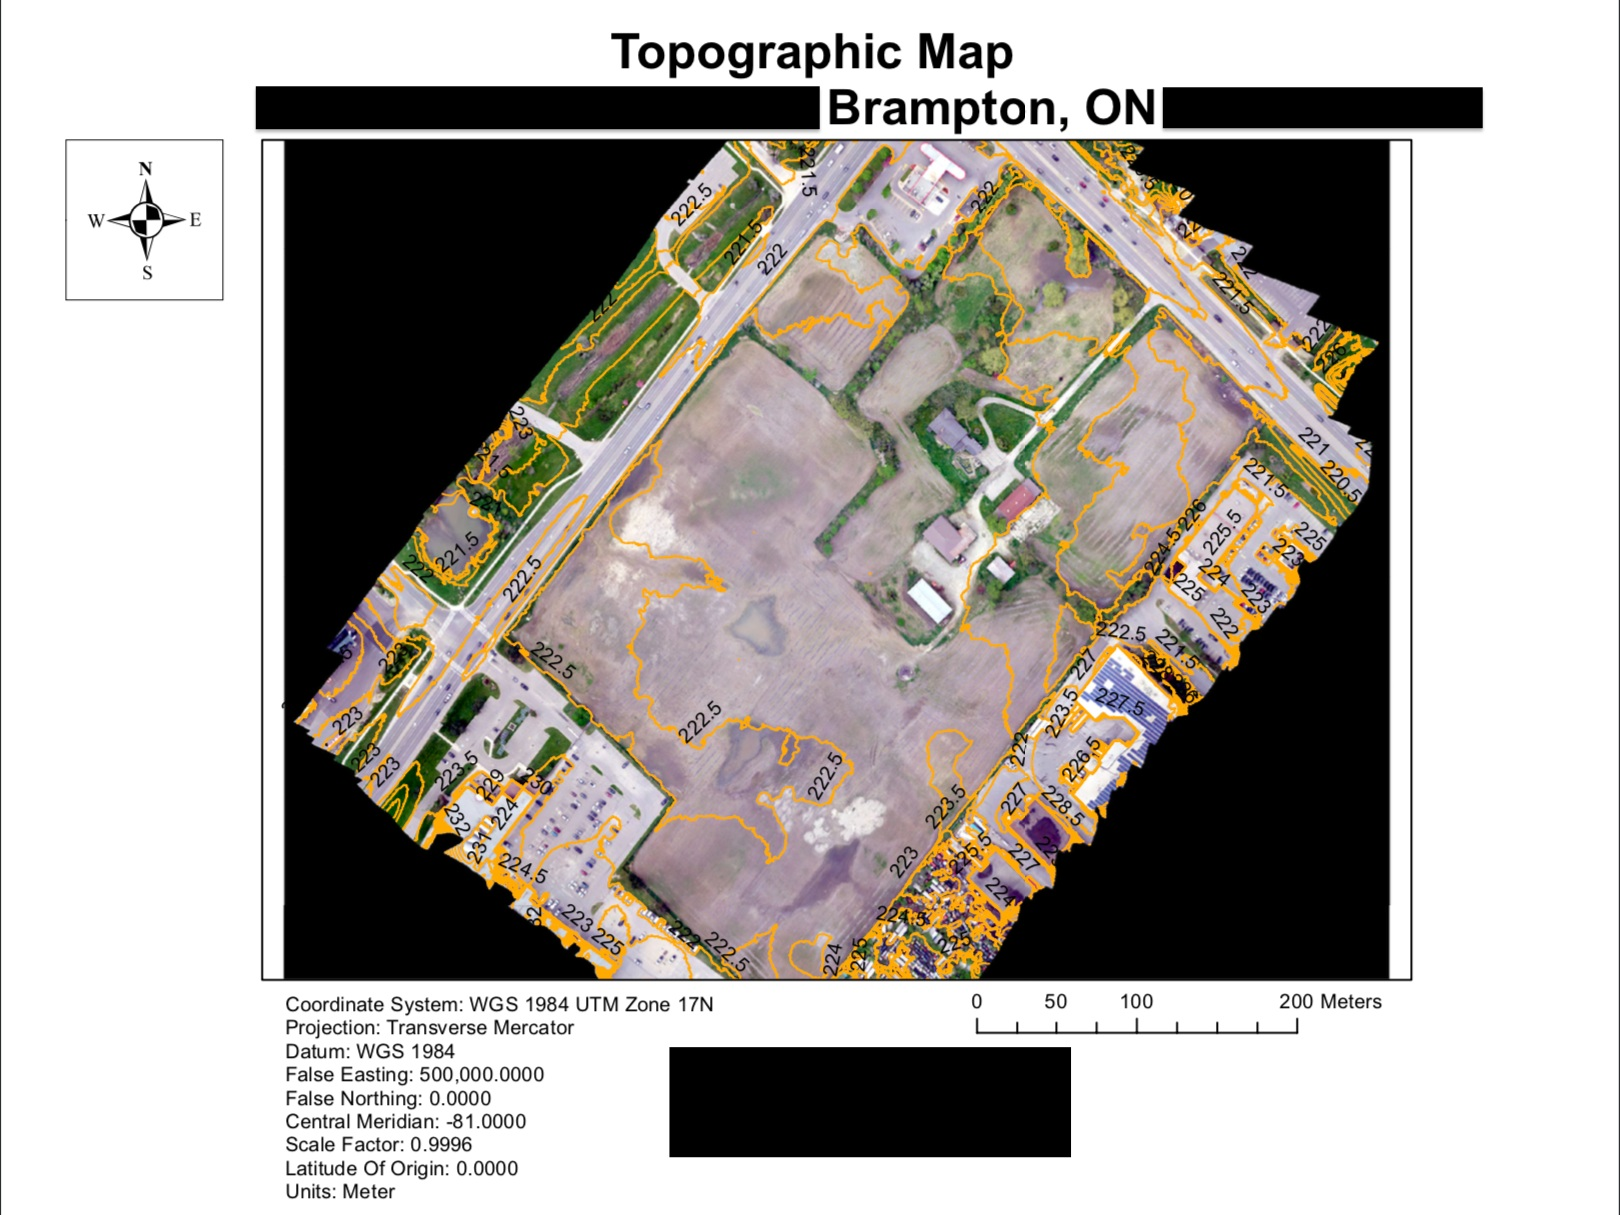 Construction - A firm overseeing the construction and development of commercial real estate space in Southwestern Ontario contacted us for aerial data and measurements, helping lower operational costs. One key finding we provided them was topographic data for BIM management during the pre-construction phase.